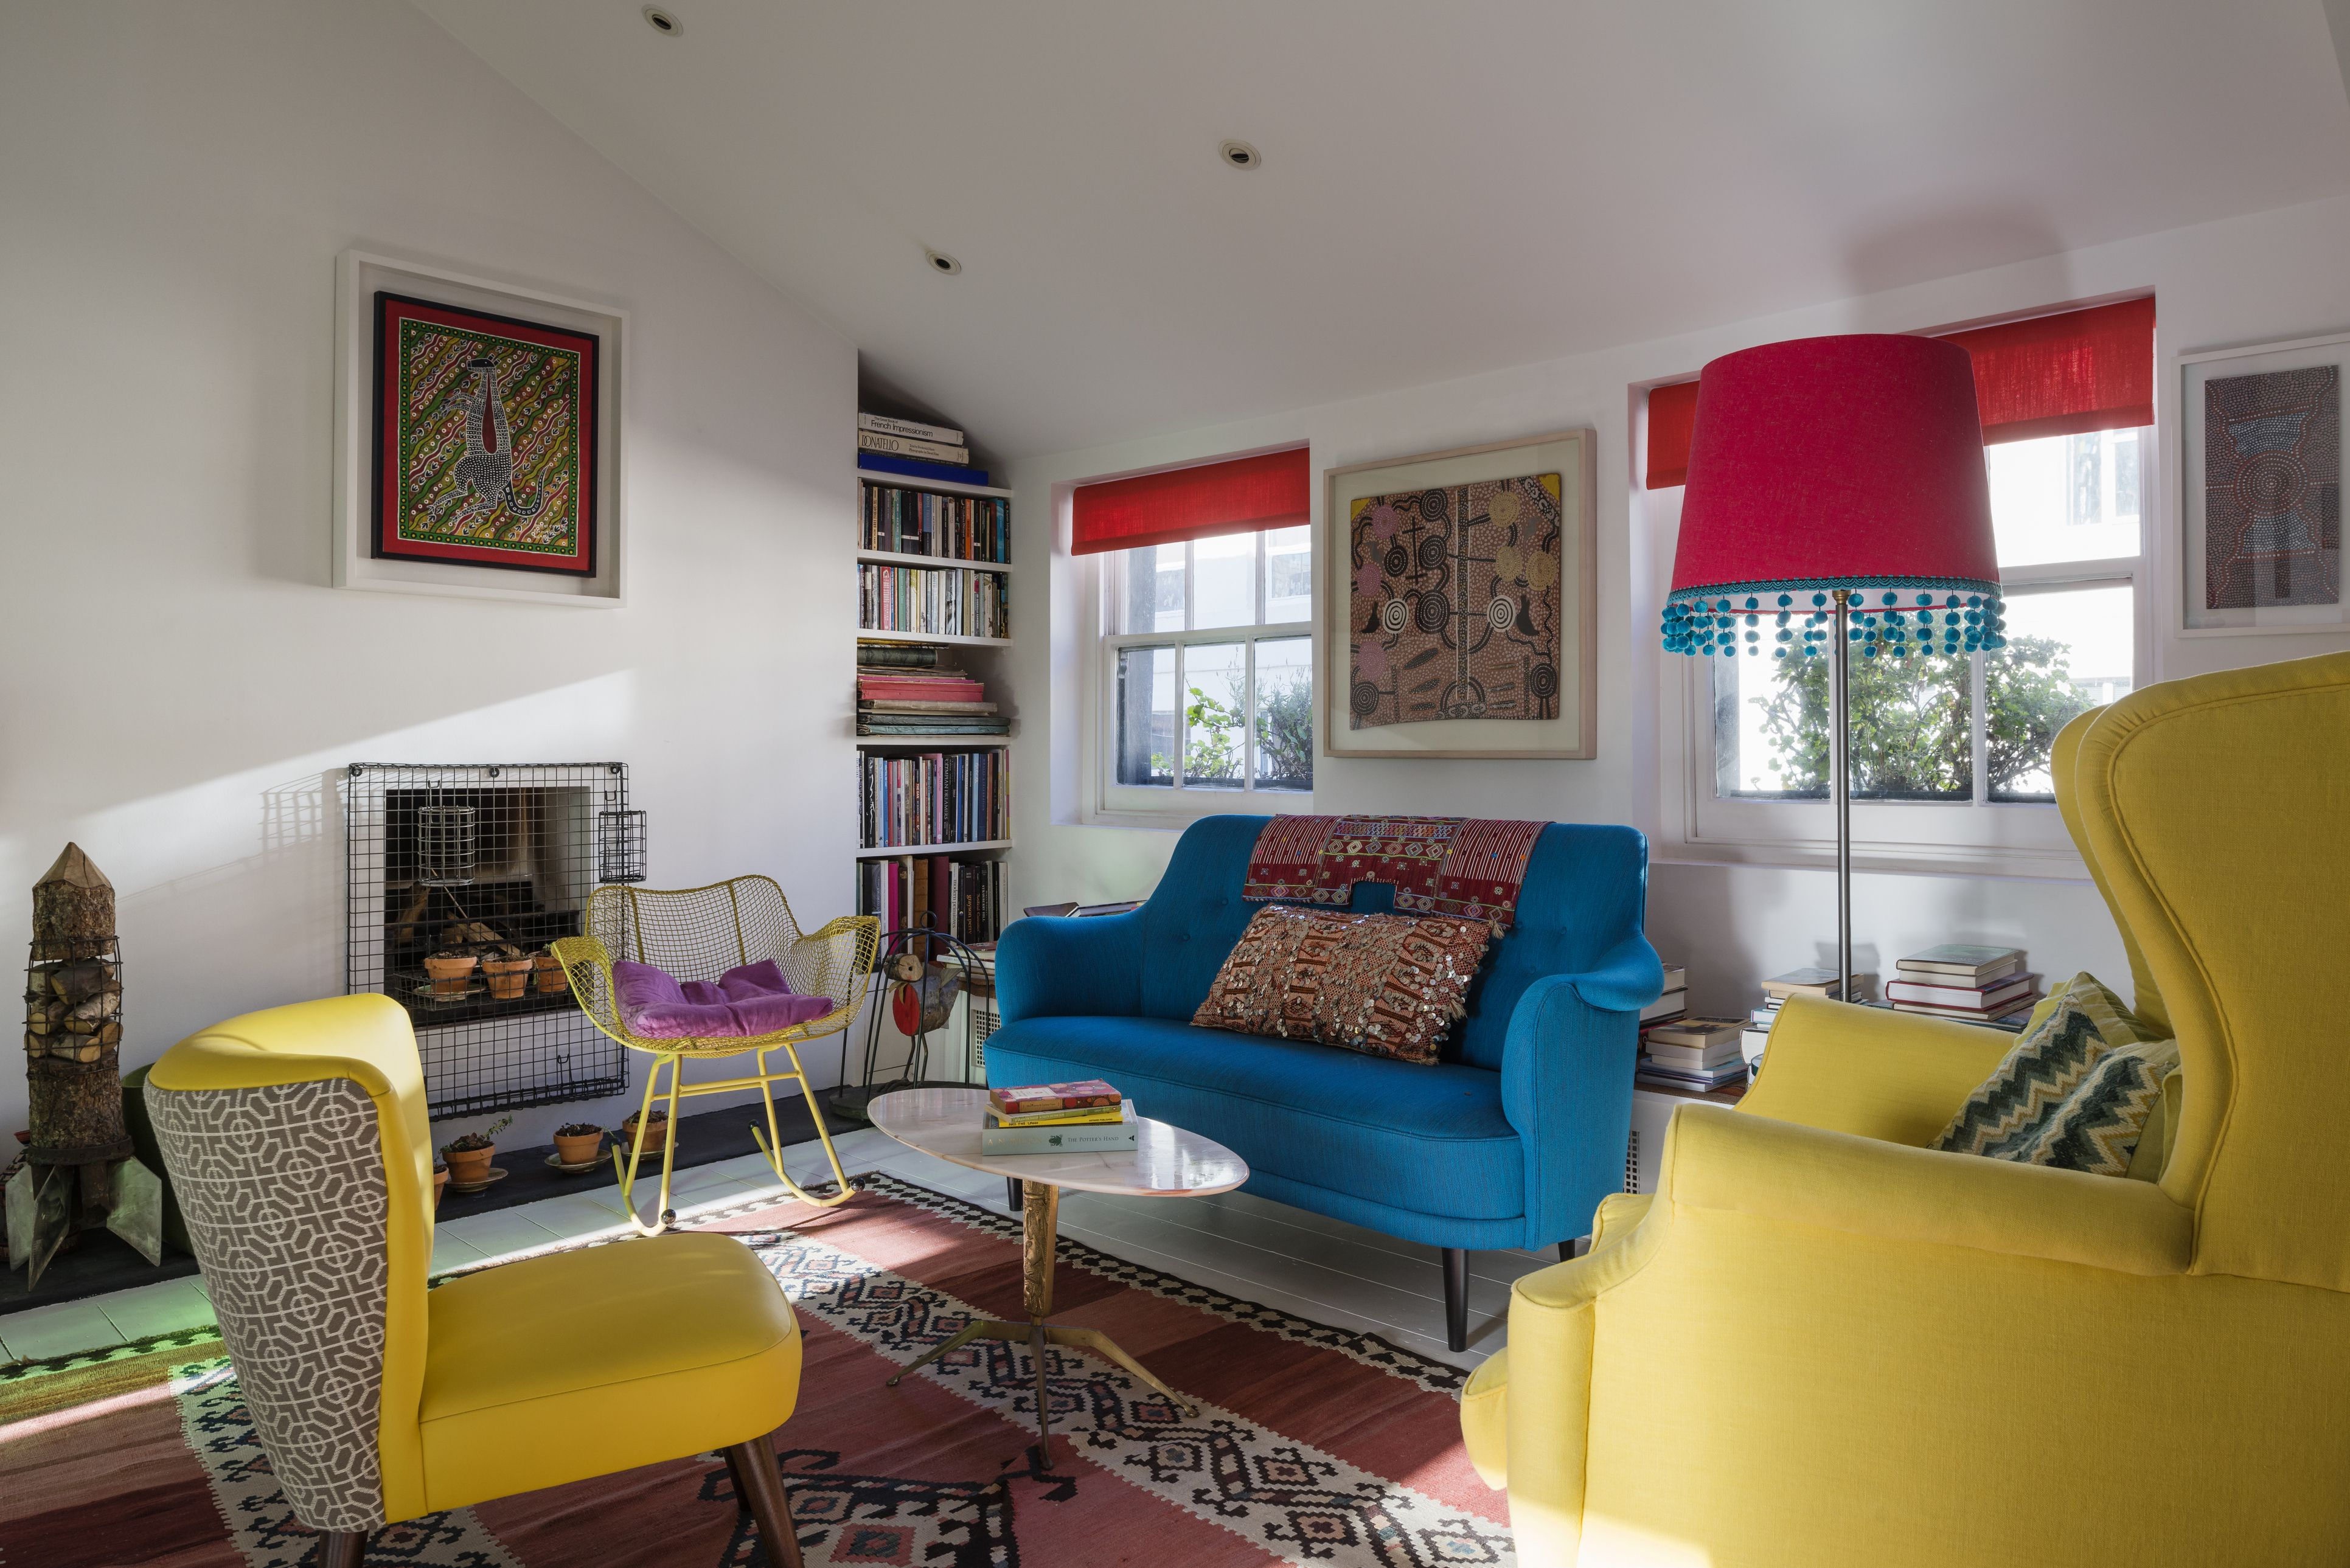 How To Use Primary Colors In Interior Design